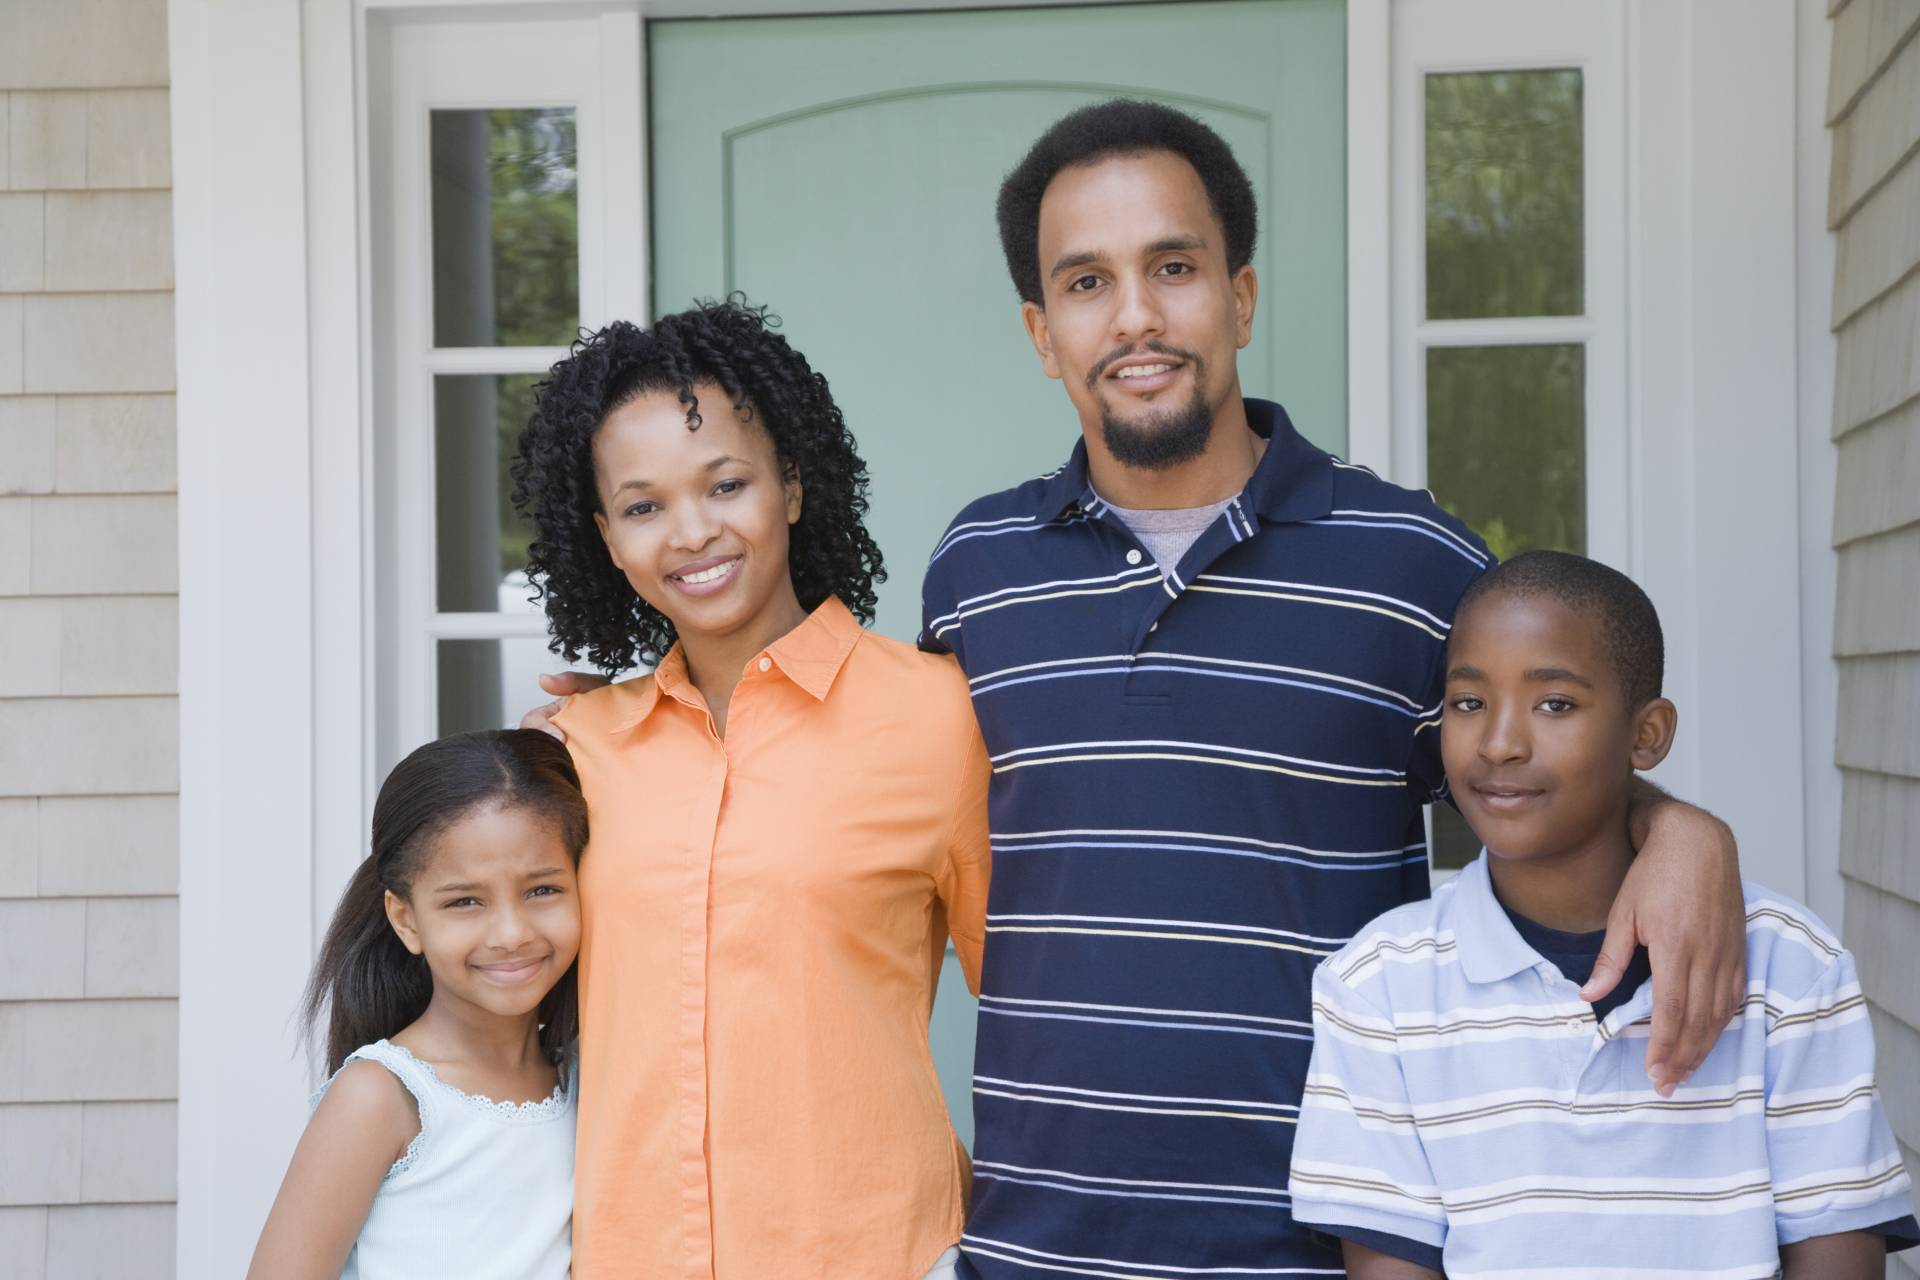 black family of 4 on porch